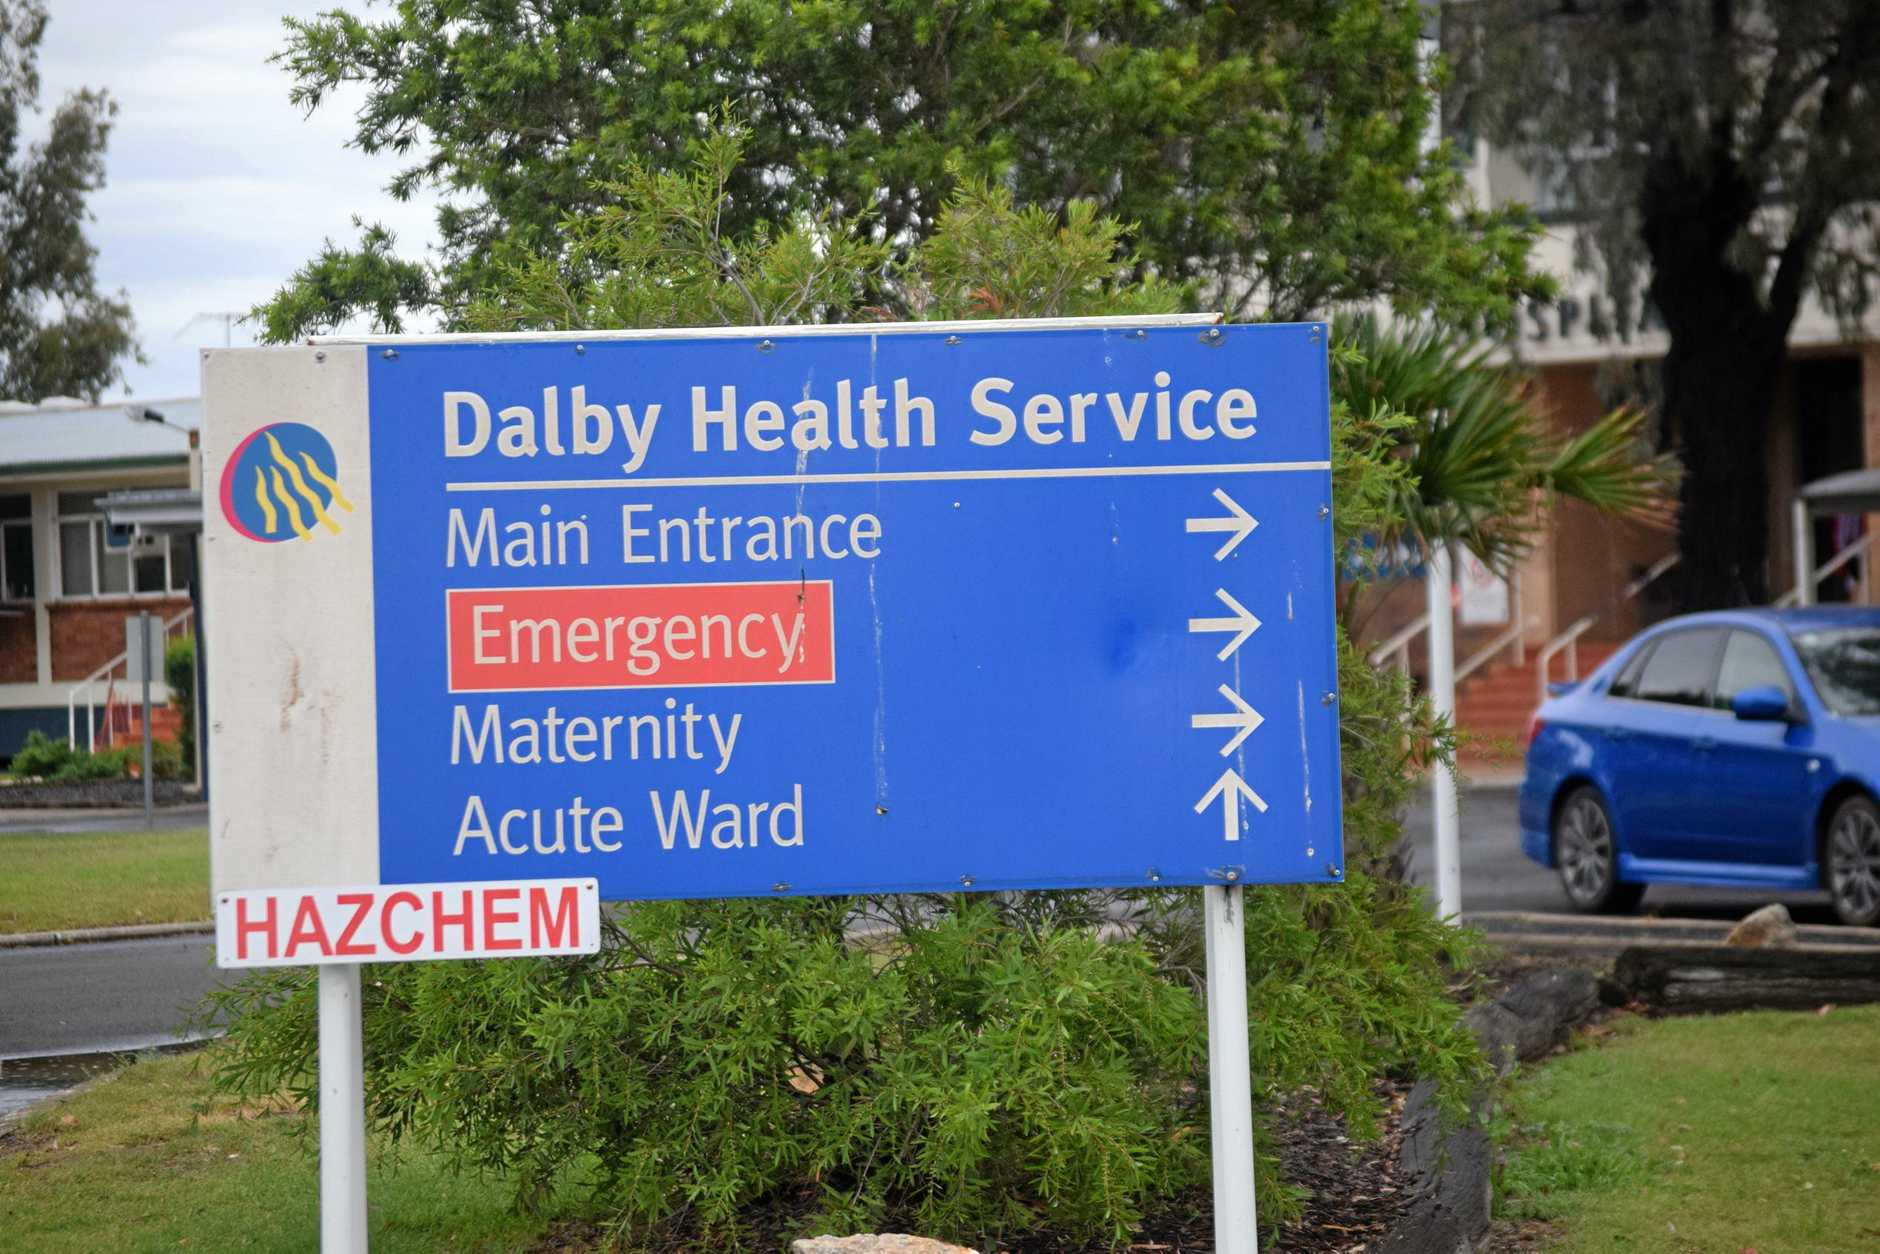 The incidents took place in Dalby in 2013.